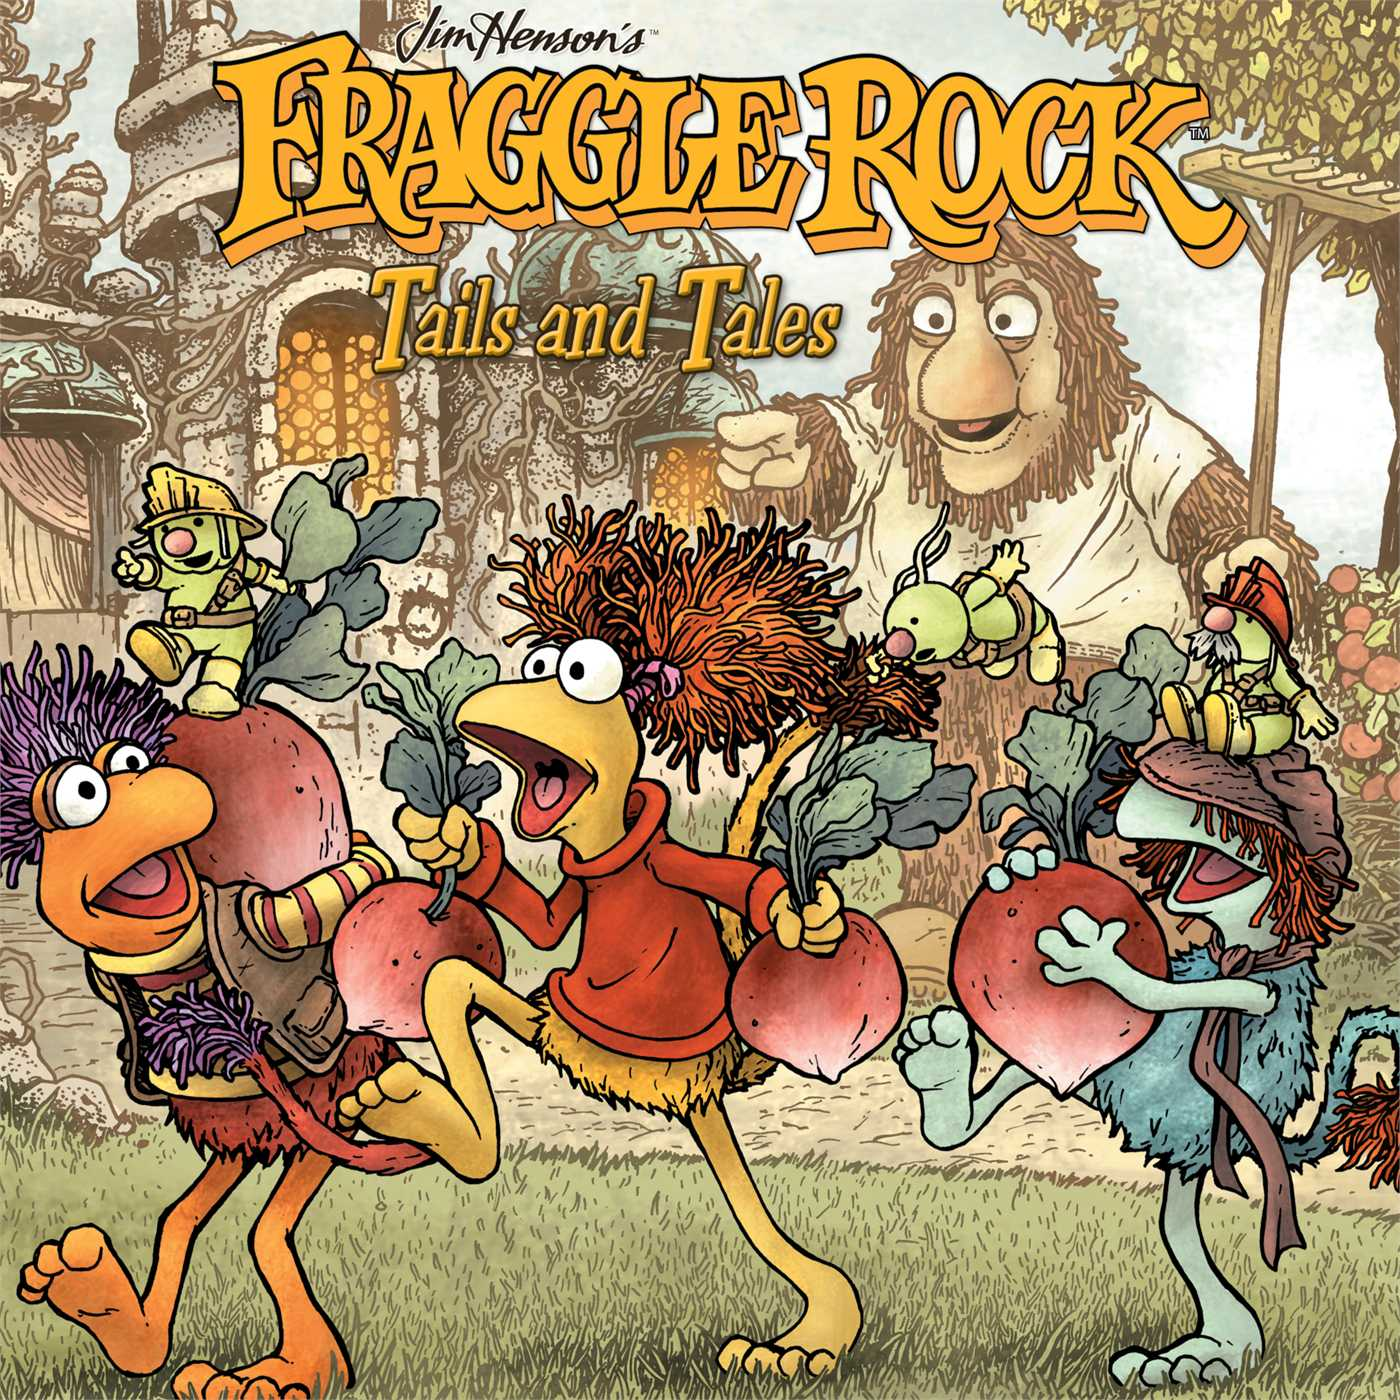 Fraggle rock volume 2 tails and tales hc 9781936393138 hr